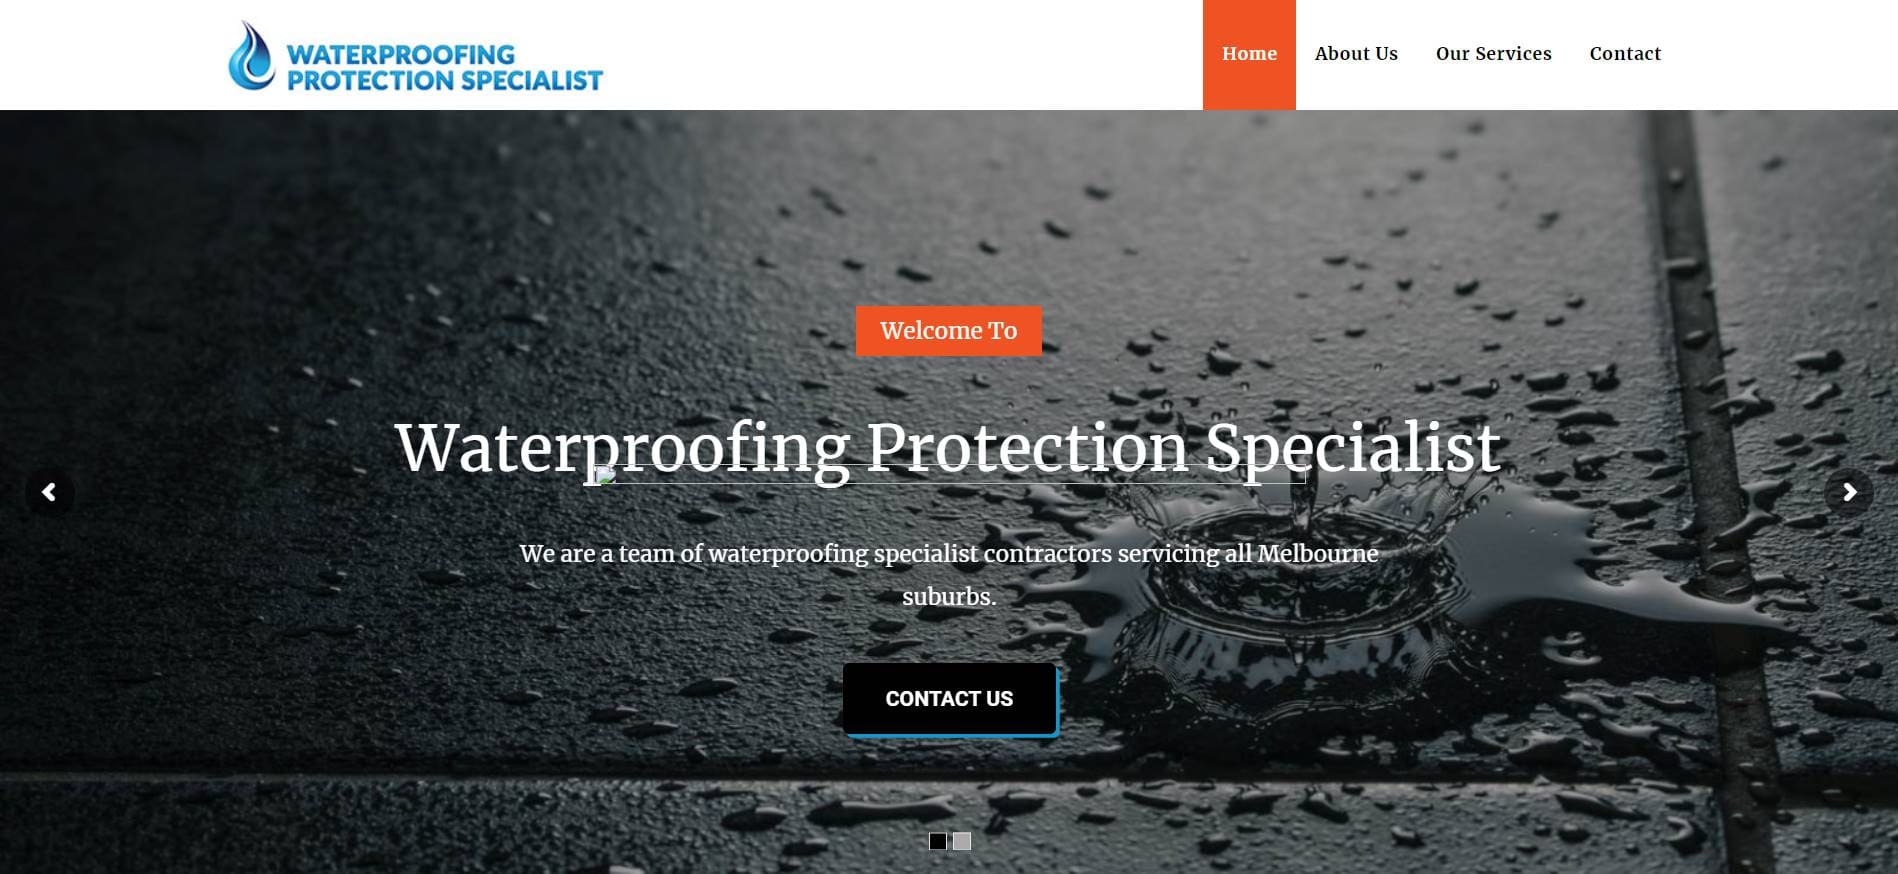 waterproofing protection specialist